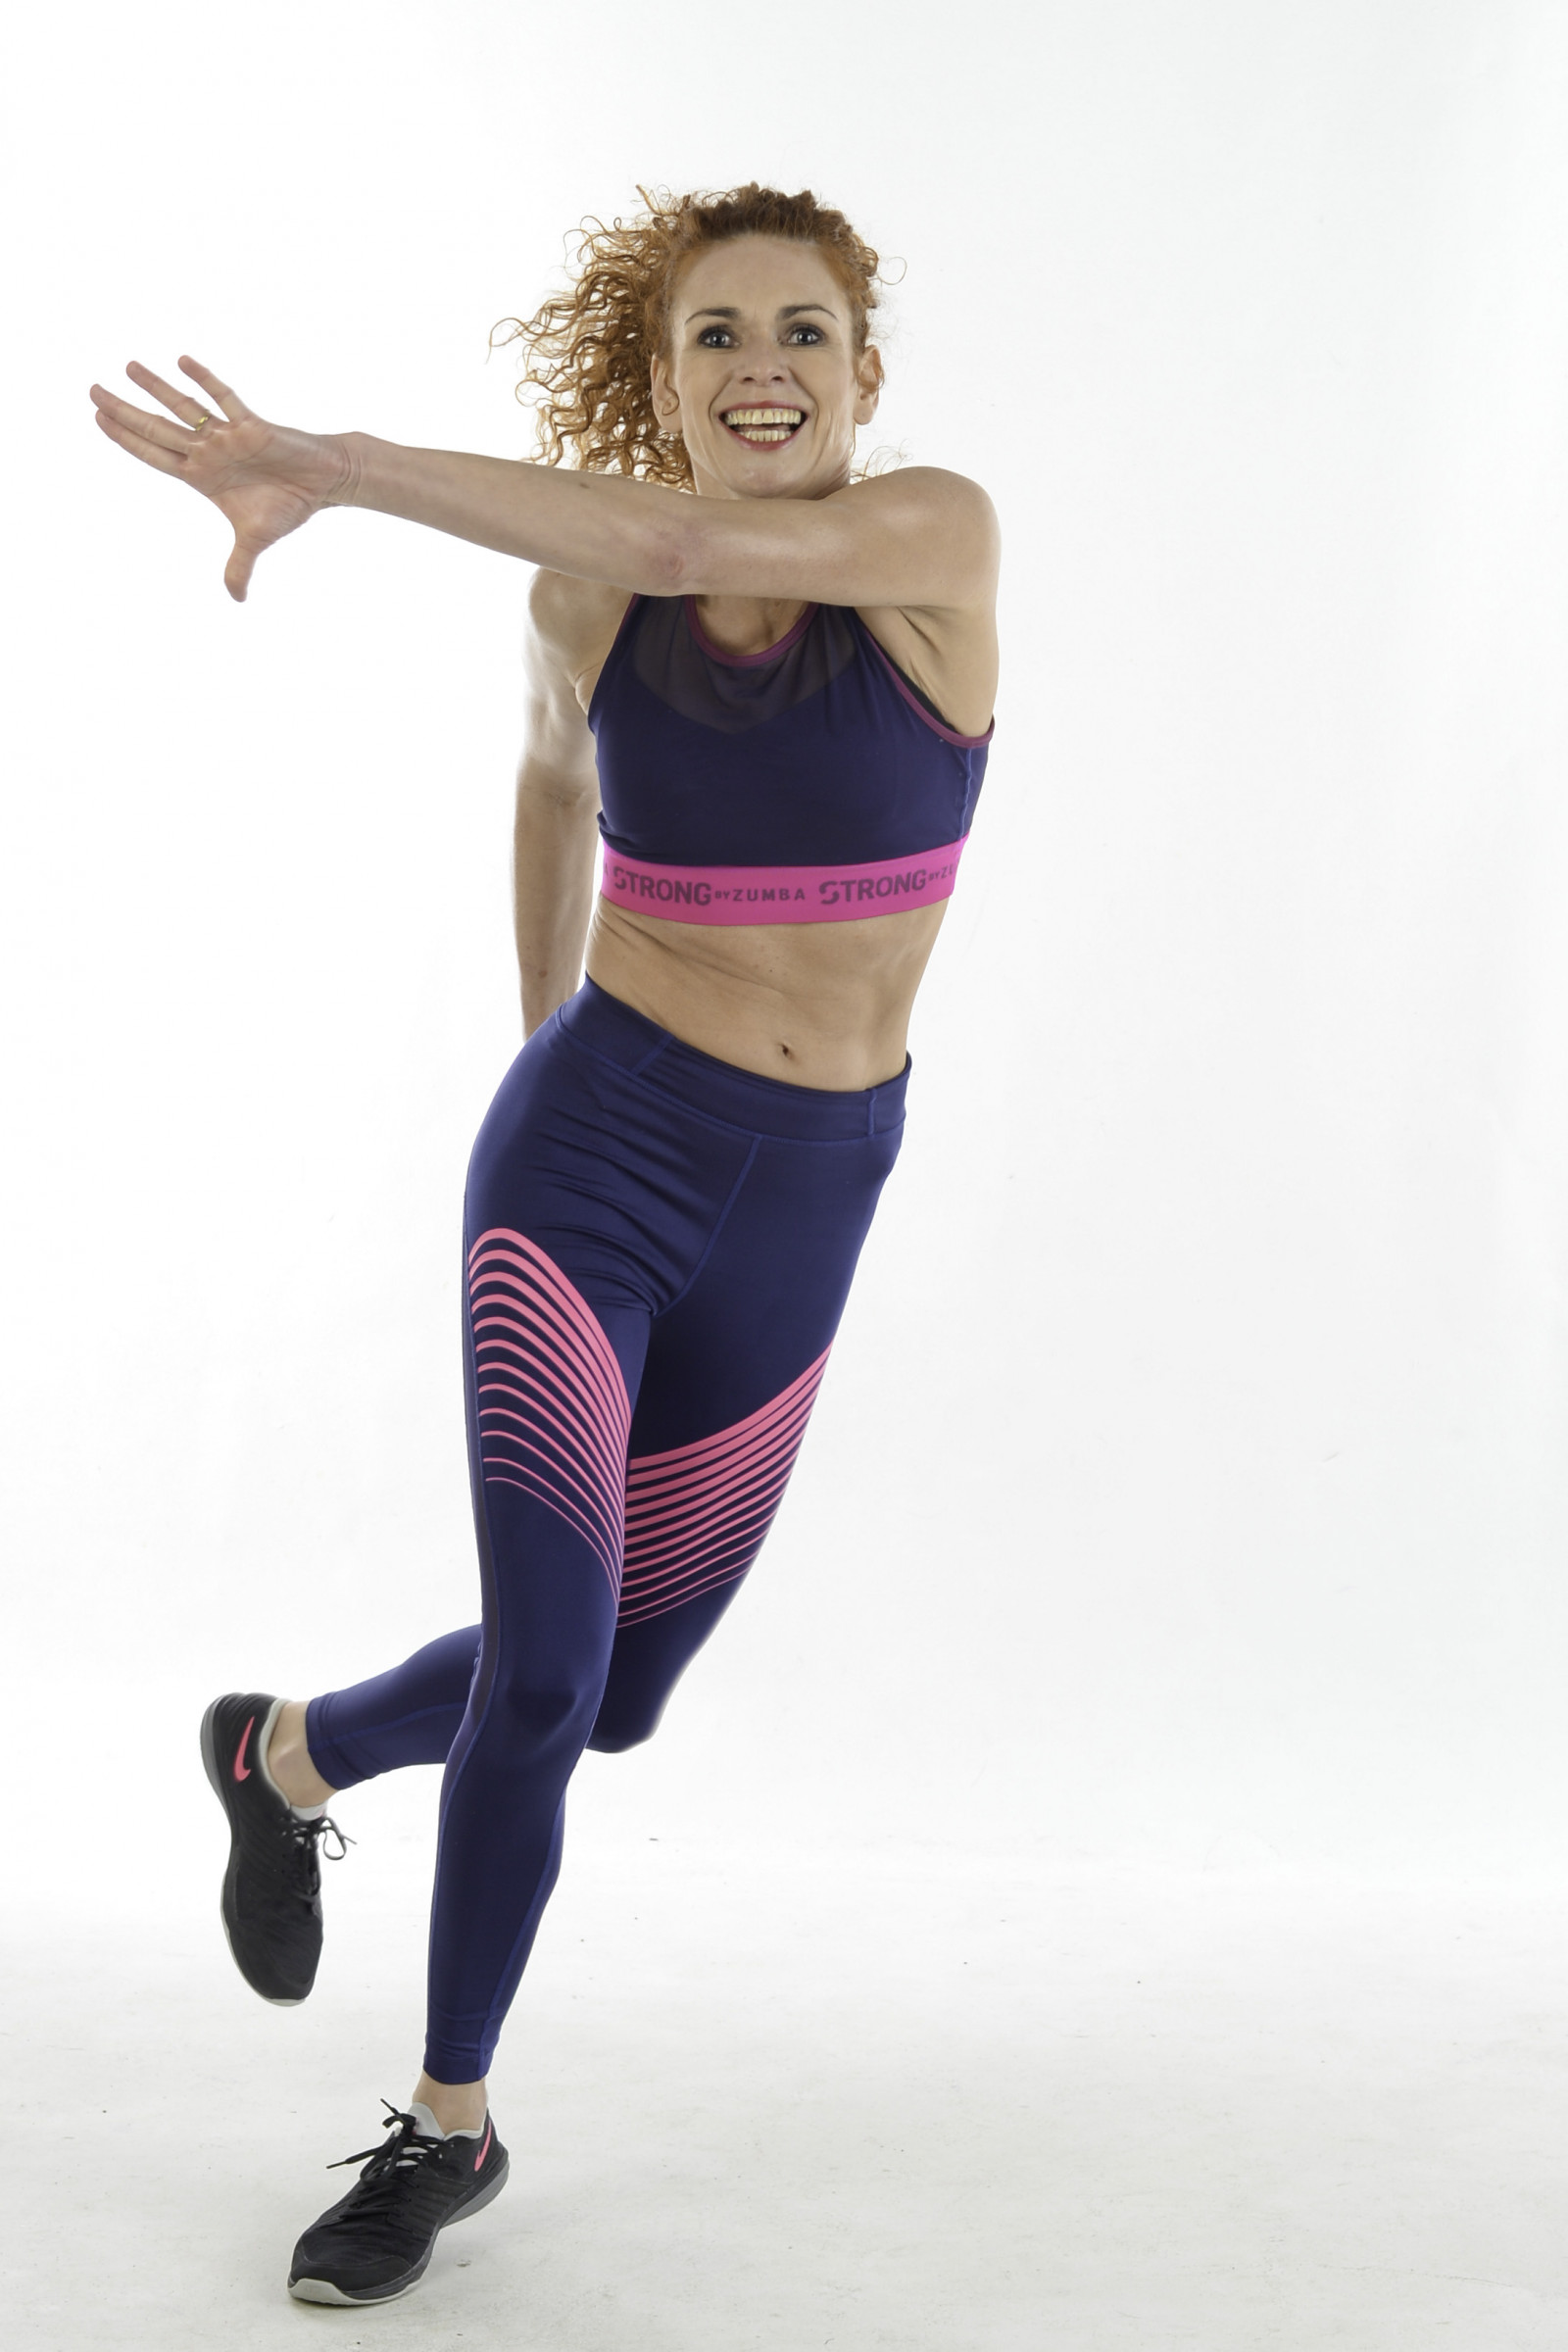 strong-by-zumba-made-by-jos-joosten